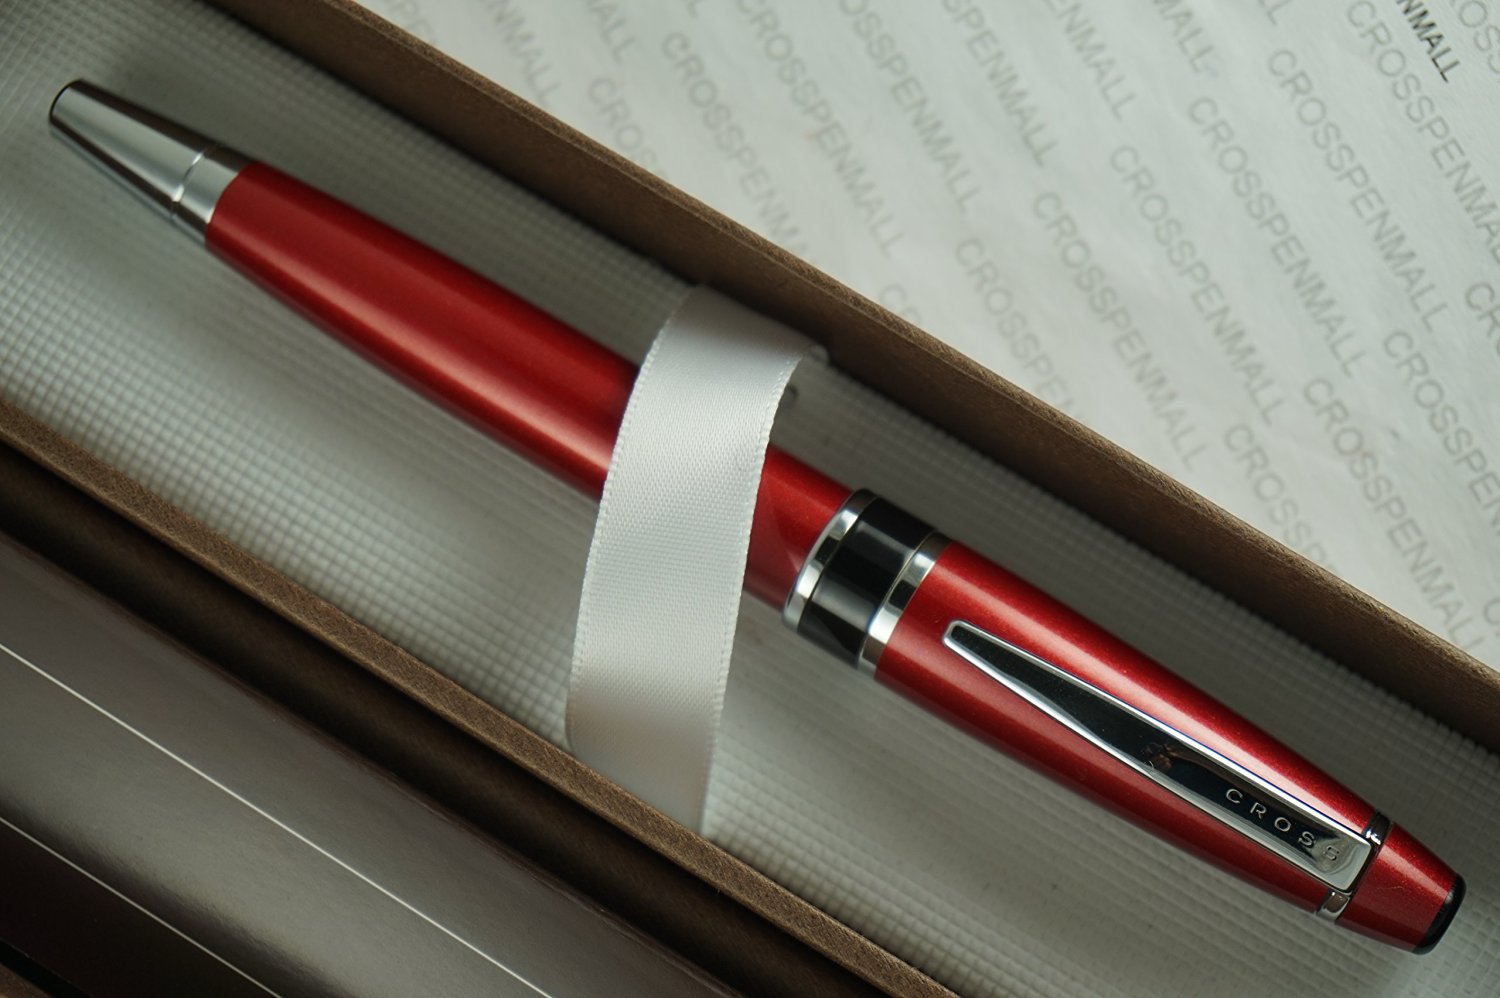 Cross Limited Edition Executive Companion Red Lacquer and Extremely Polished Chrome Fine nib Fountain Pen